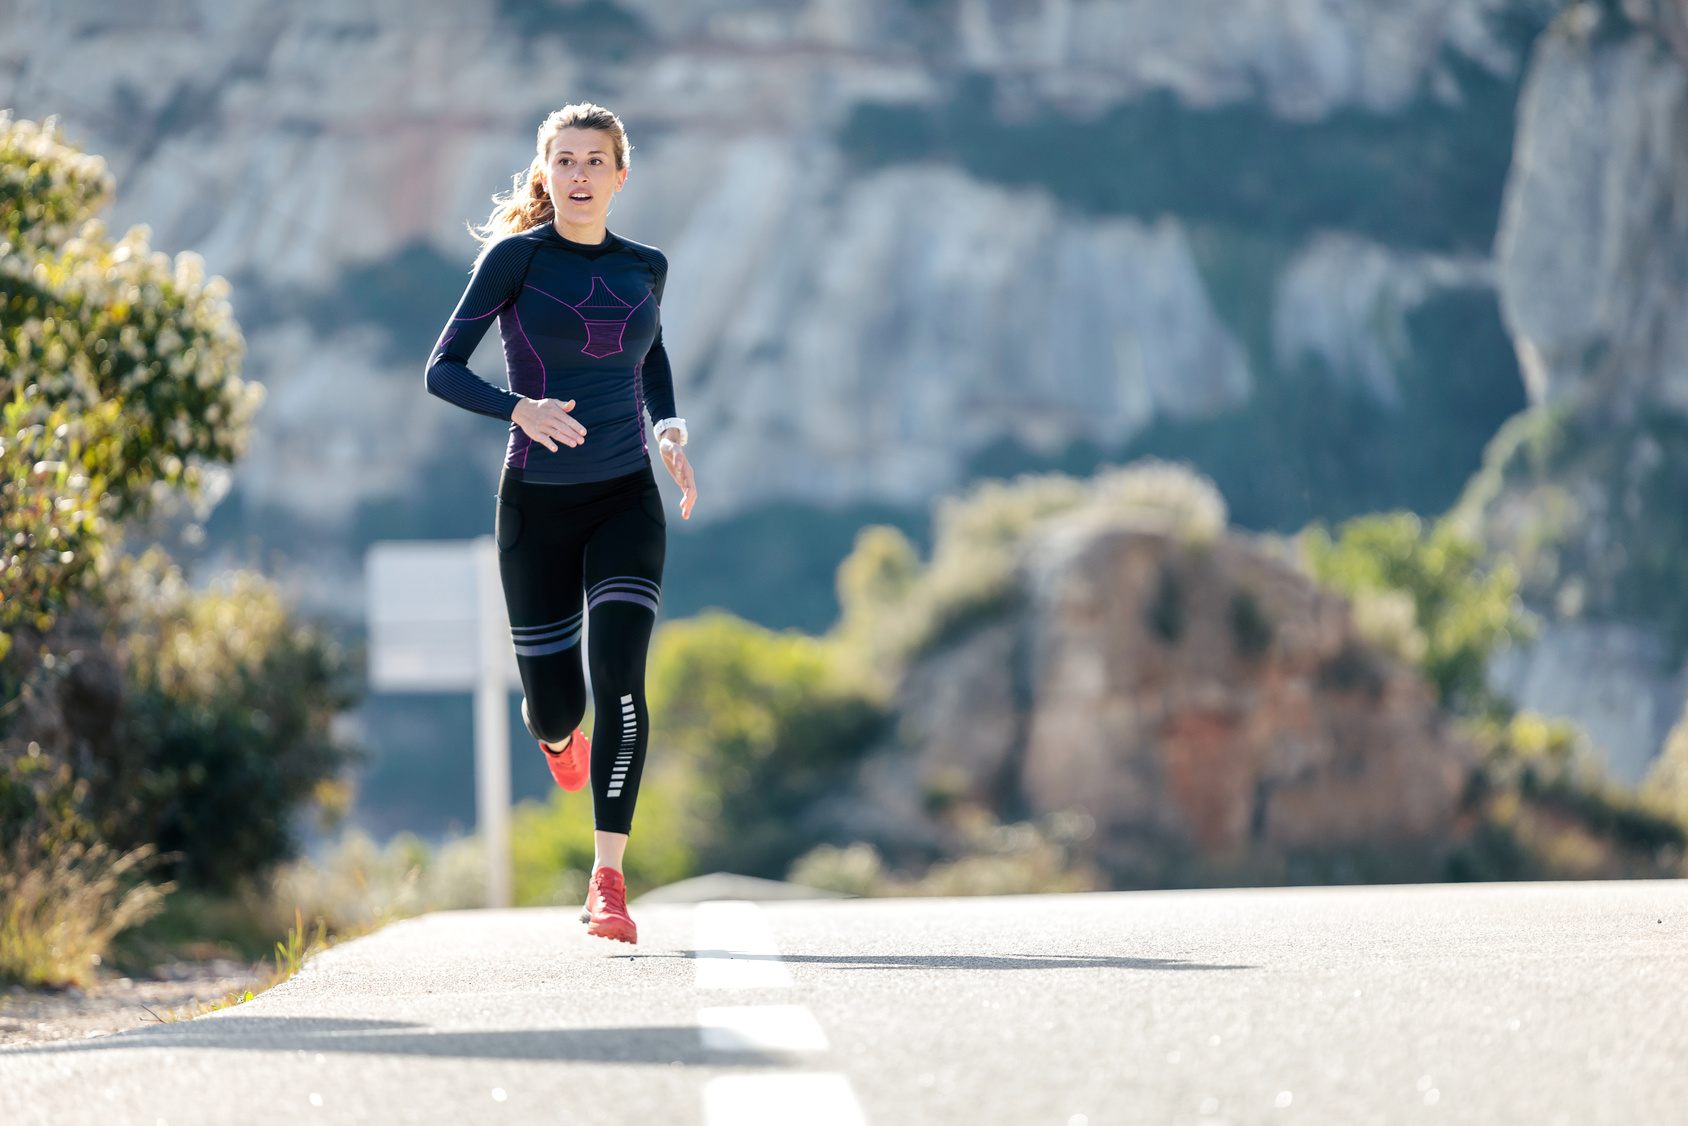 does running affect your sex life